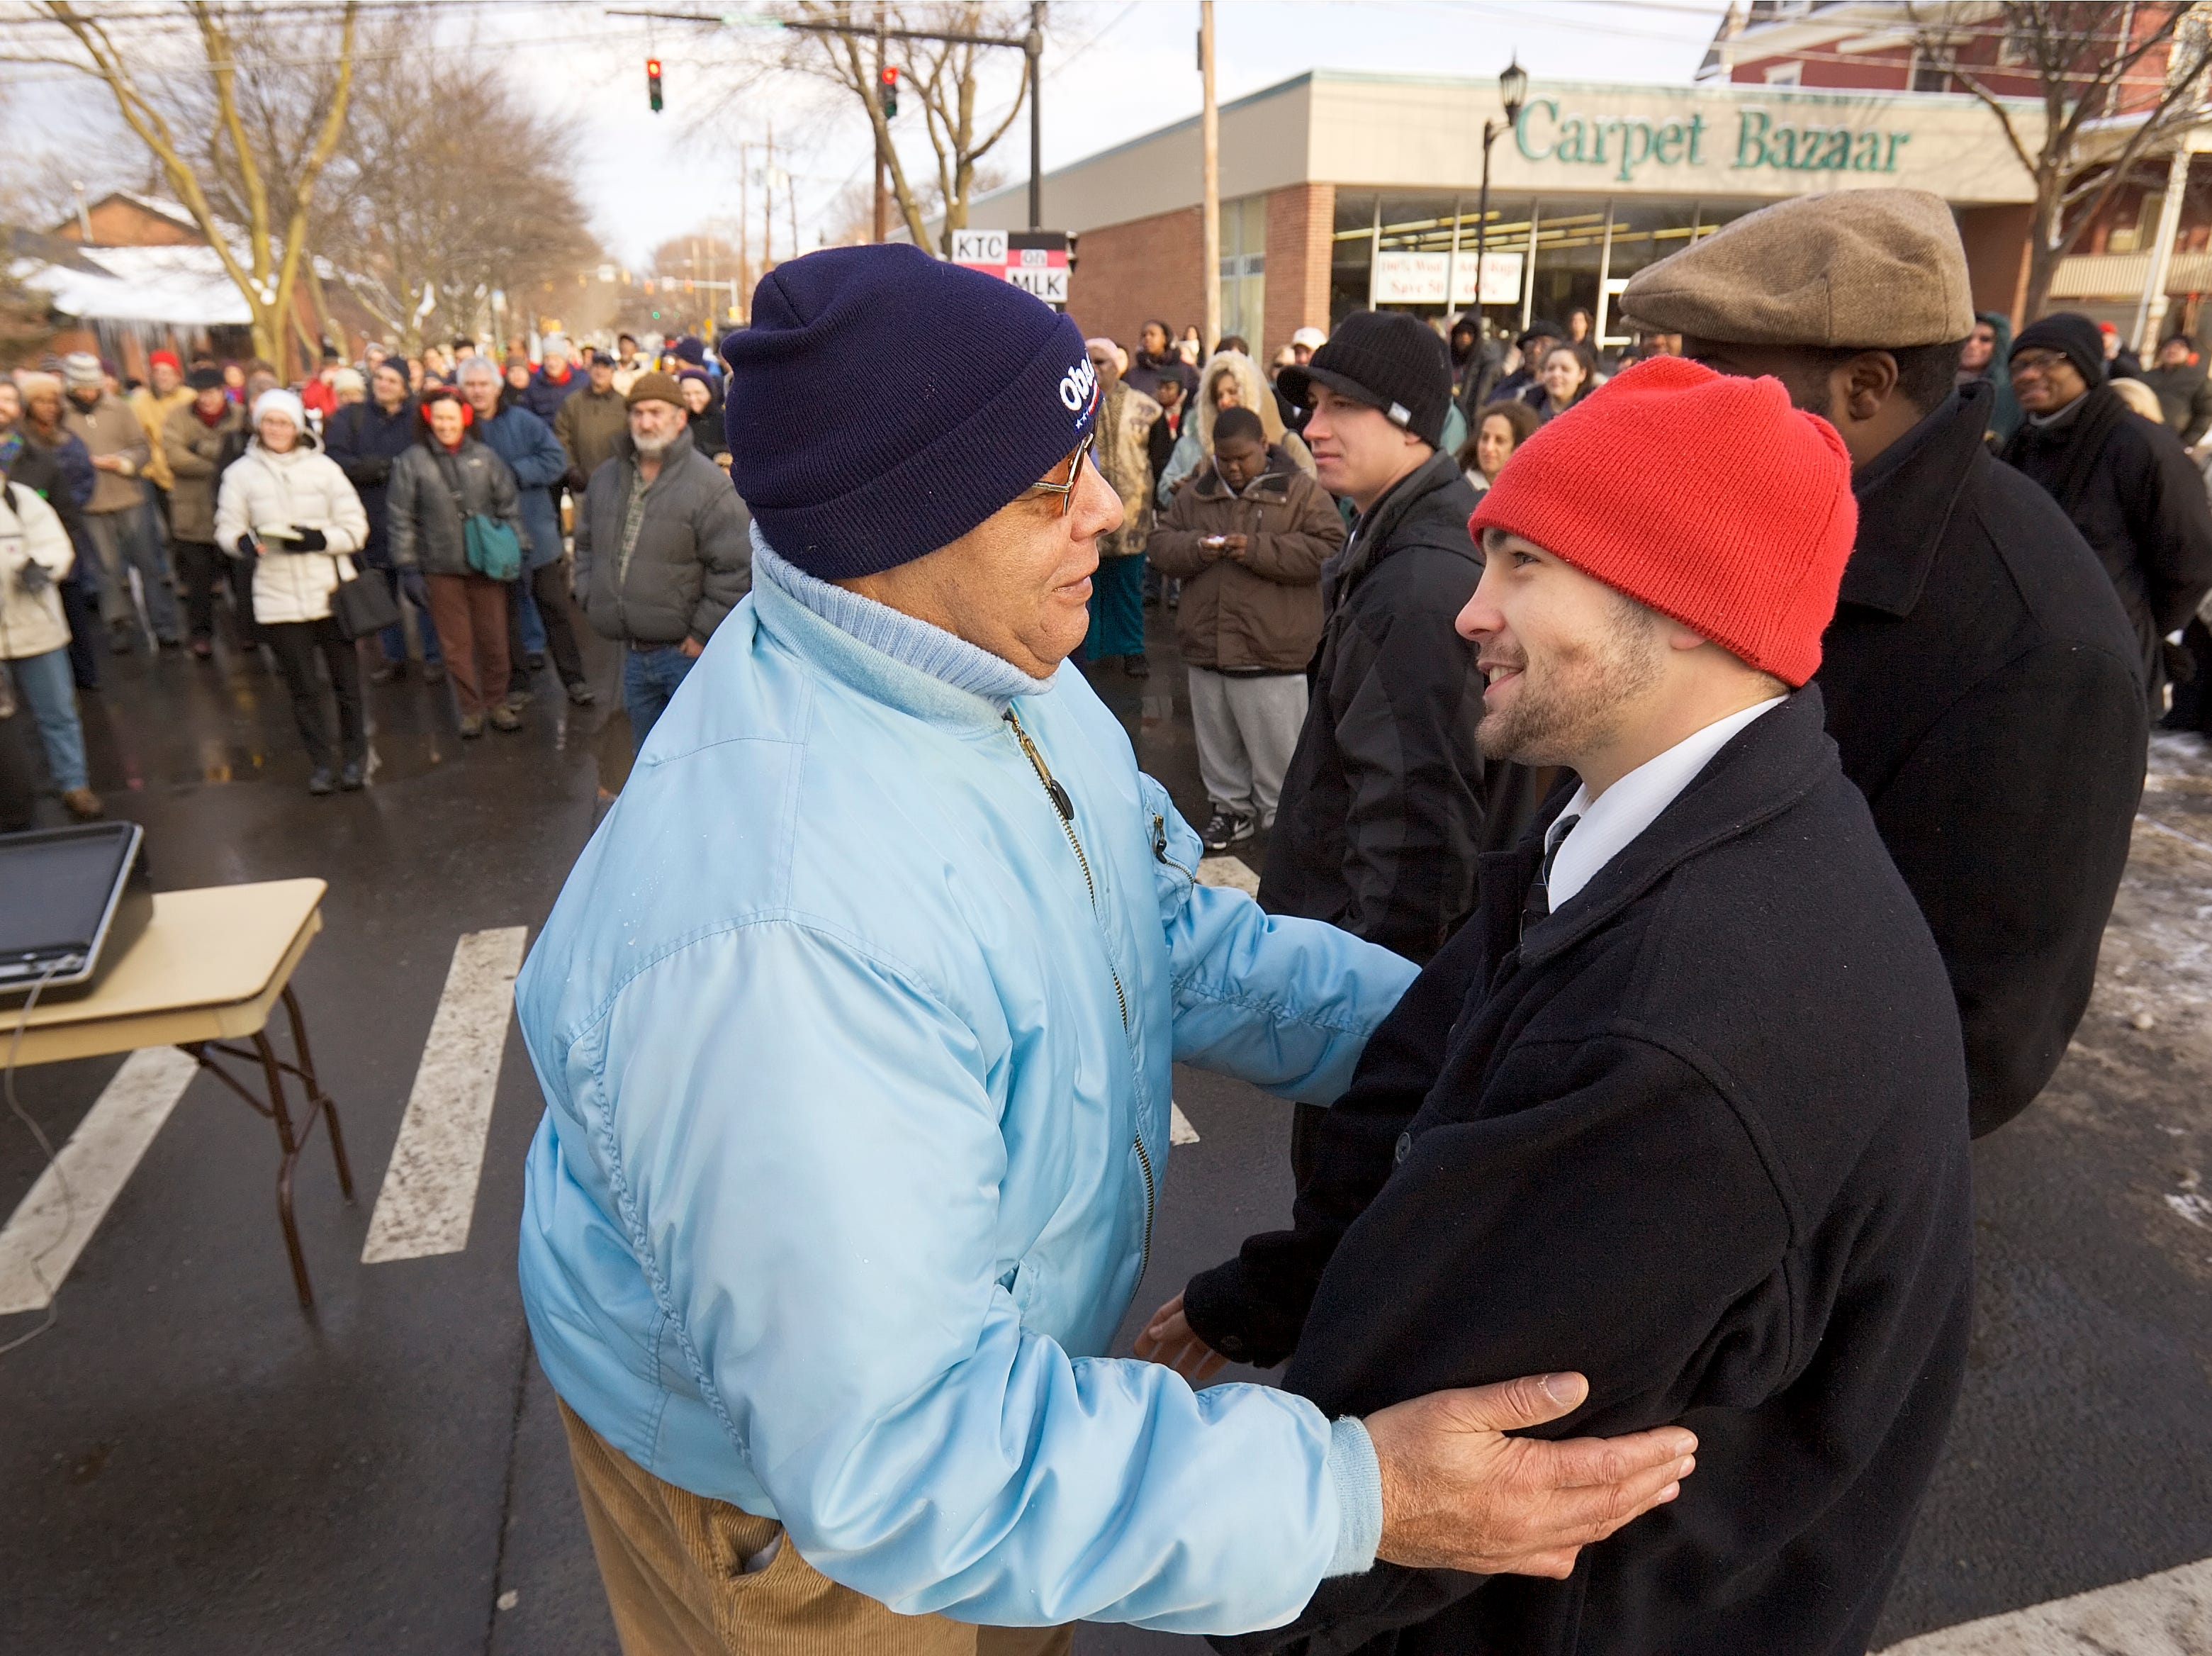 2009: Gino Bush, left and Dane Schreiner embrace after Schreiner, a former member of Gino Bush's Circle of Recovery group at Ithaca High School, spoke Monday morning at the formal unveiling ceremony for the dual naming of State Street in honor of Martin Luther King Jr.